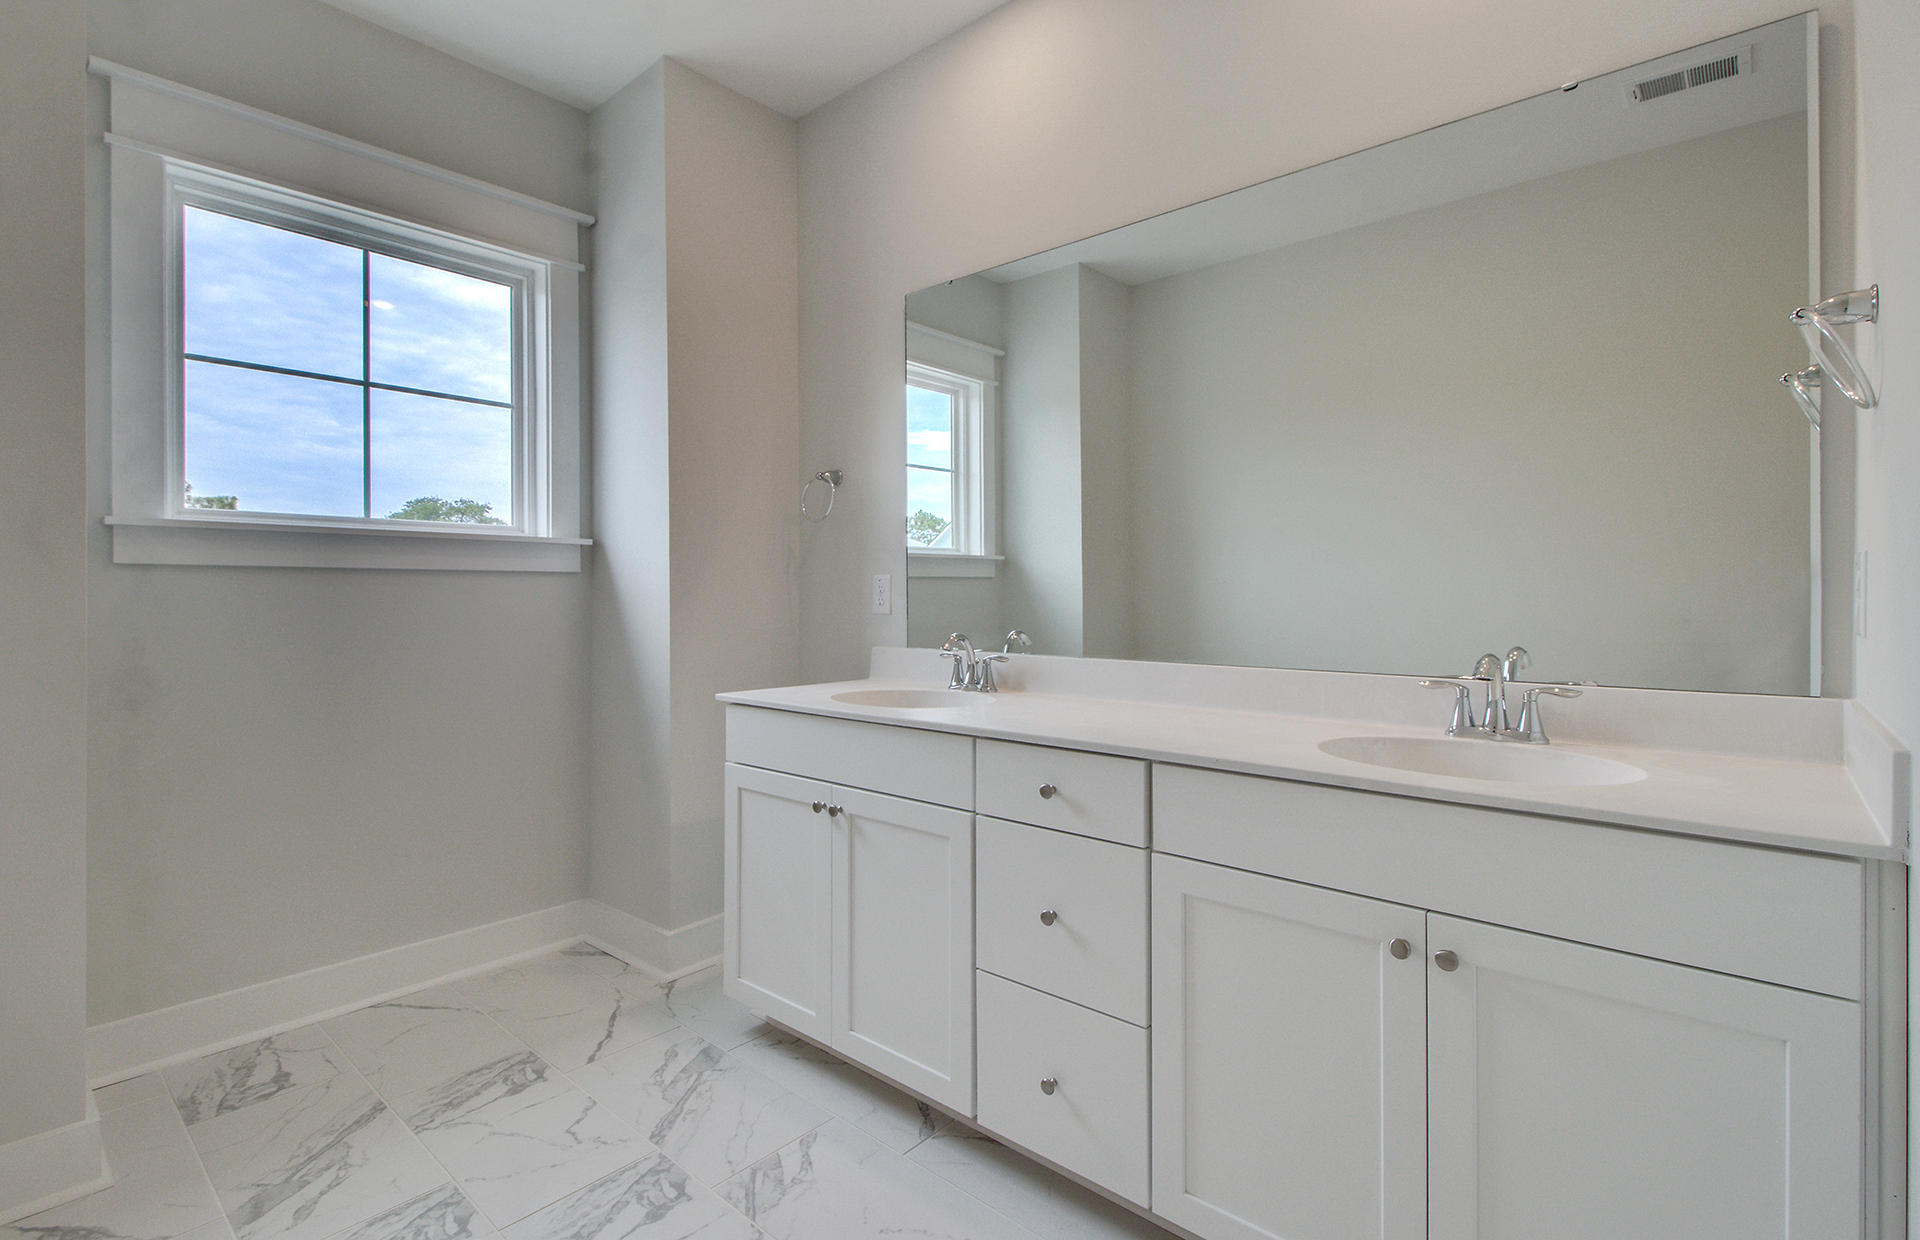 Governors Cay Homes For Sale - 804 Kings Oak, Charleston, SC - 8